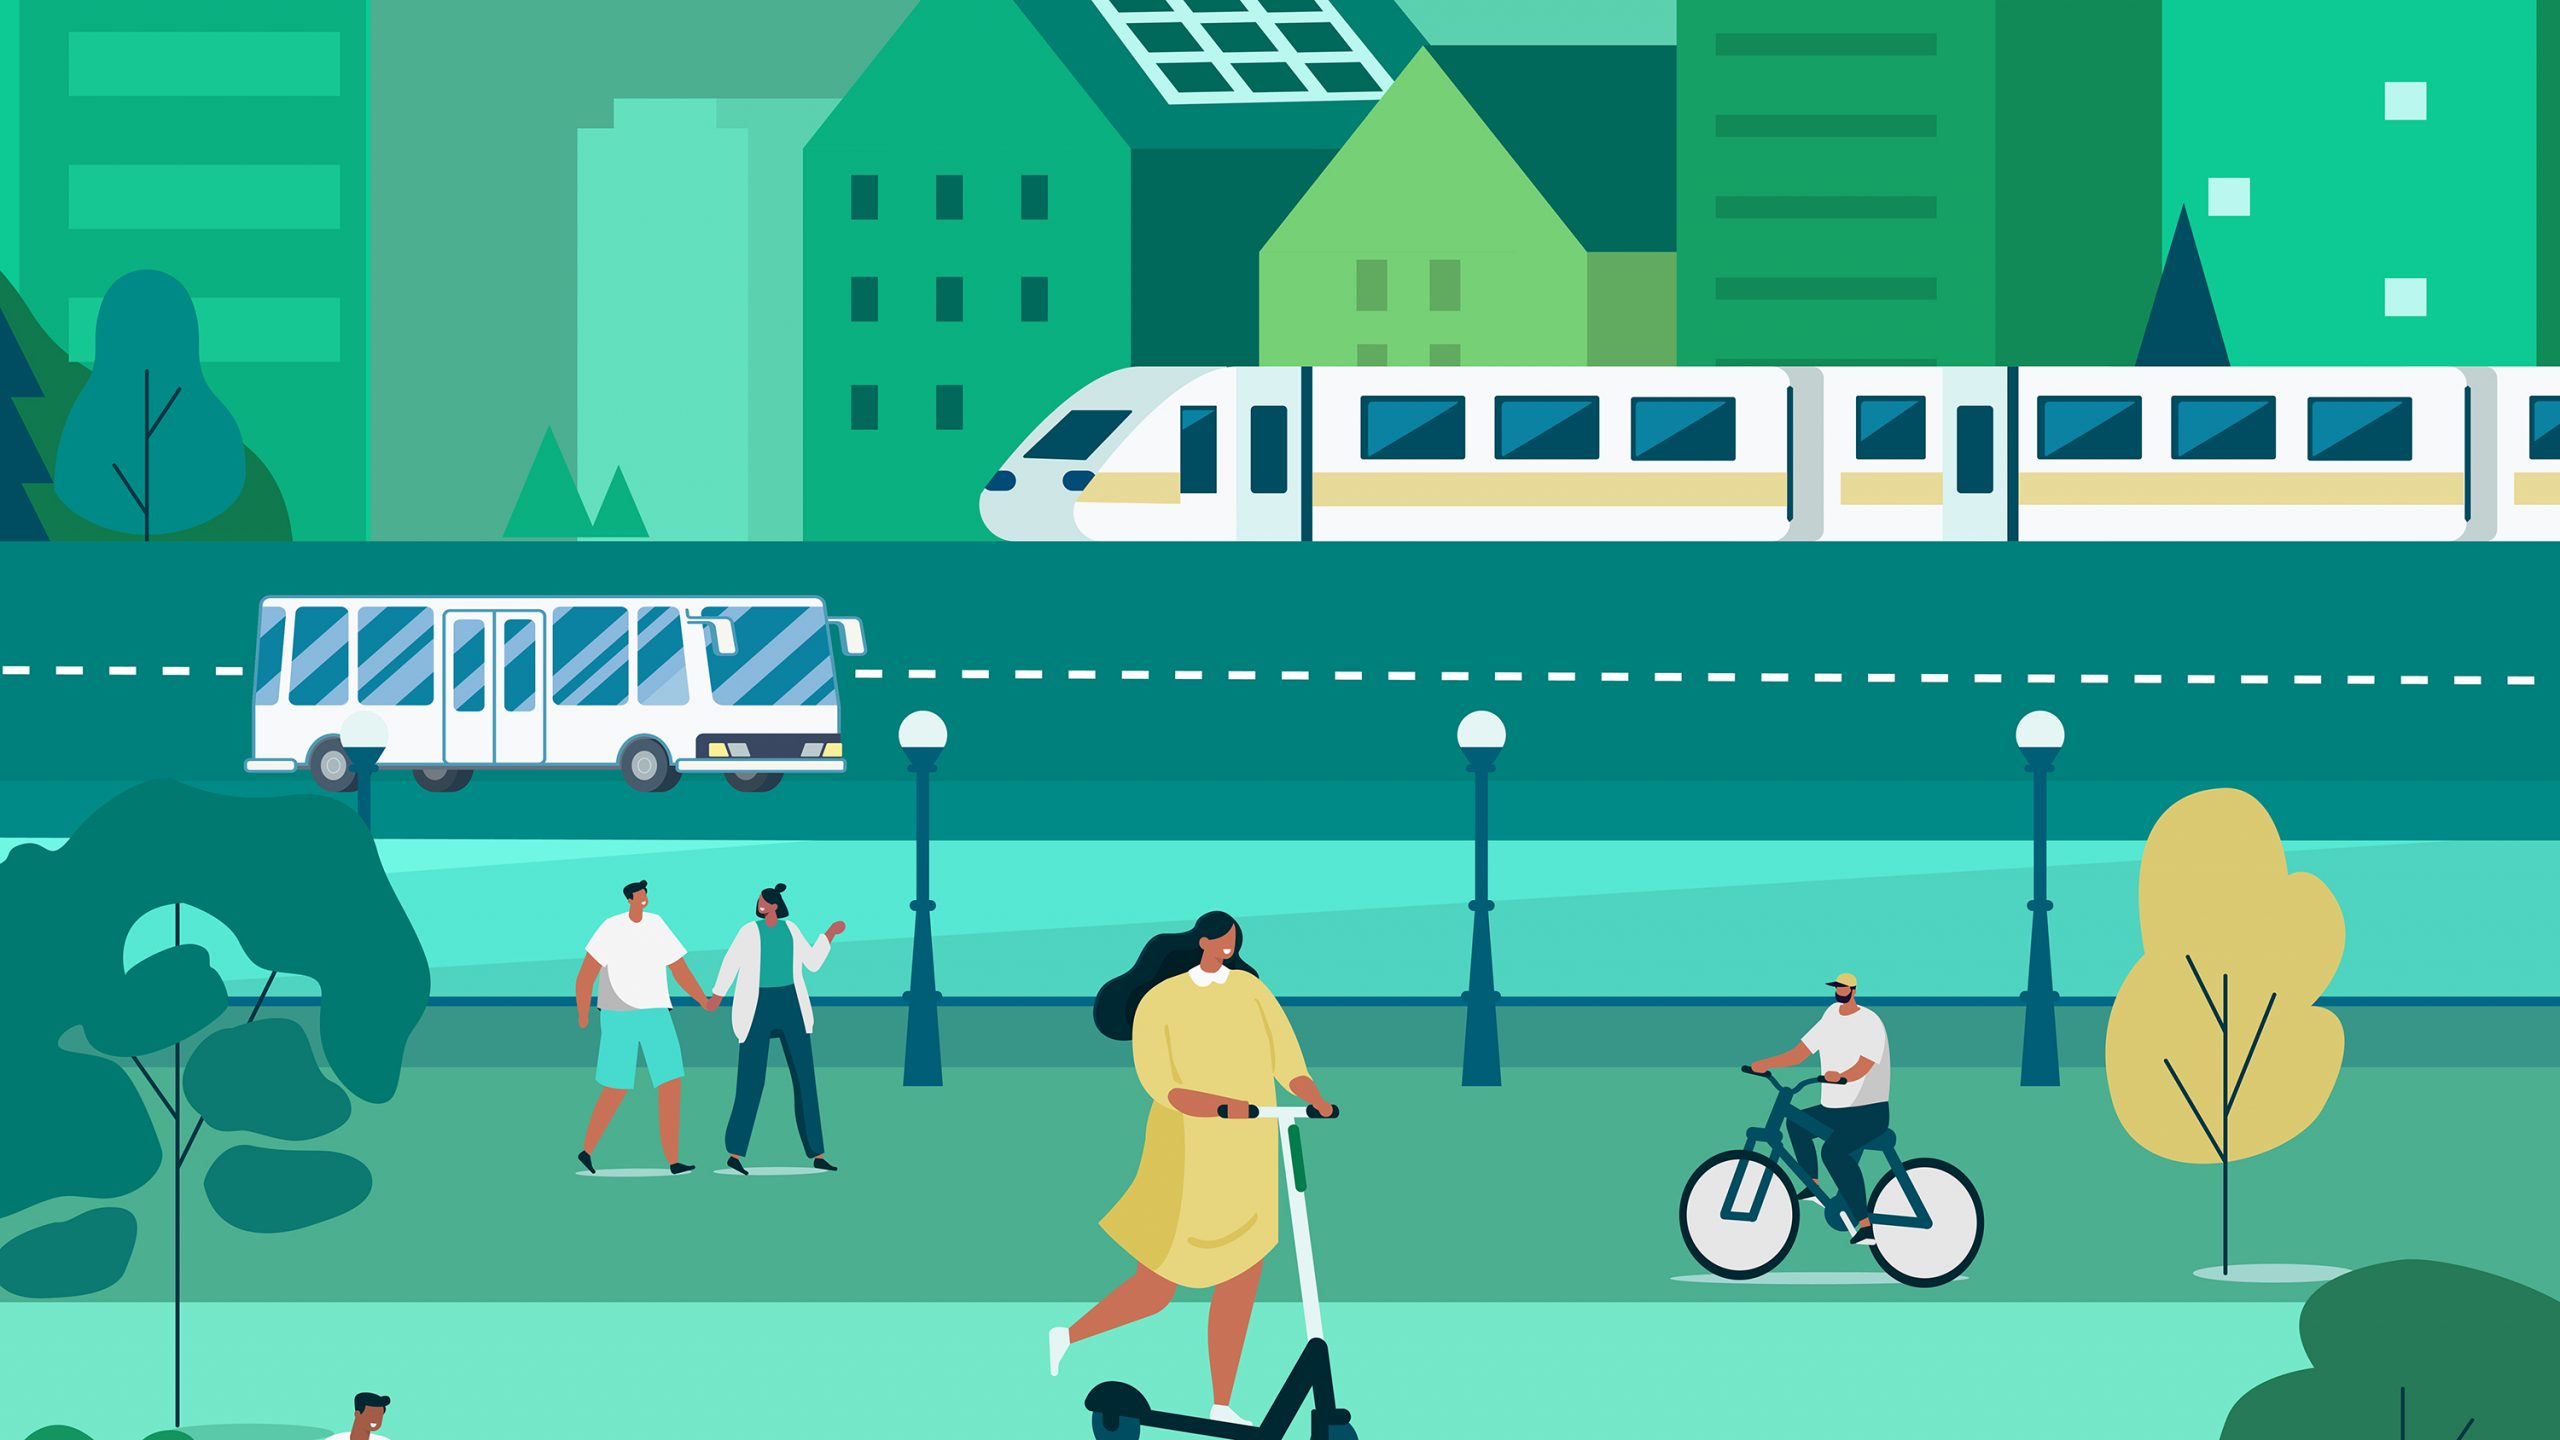 transportation monitoring graphic shows trains, buses, bikes and more